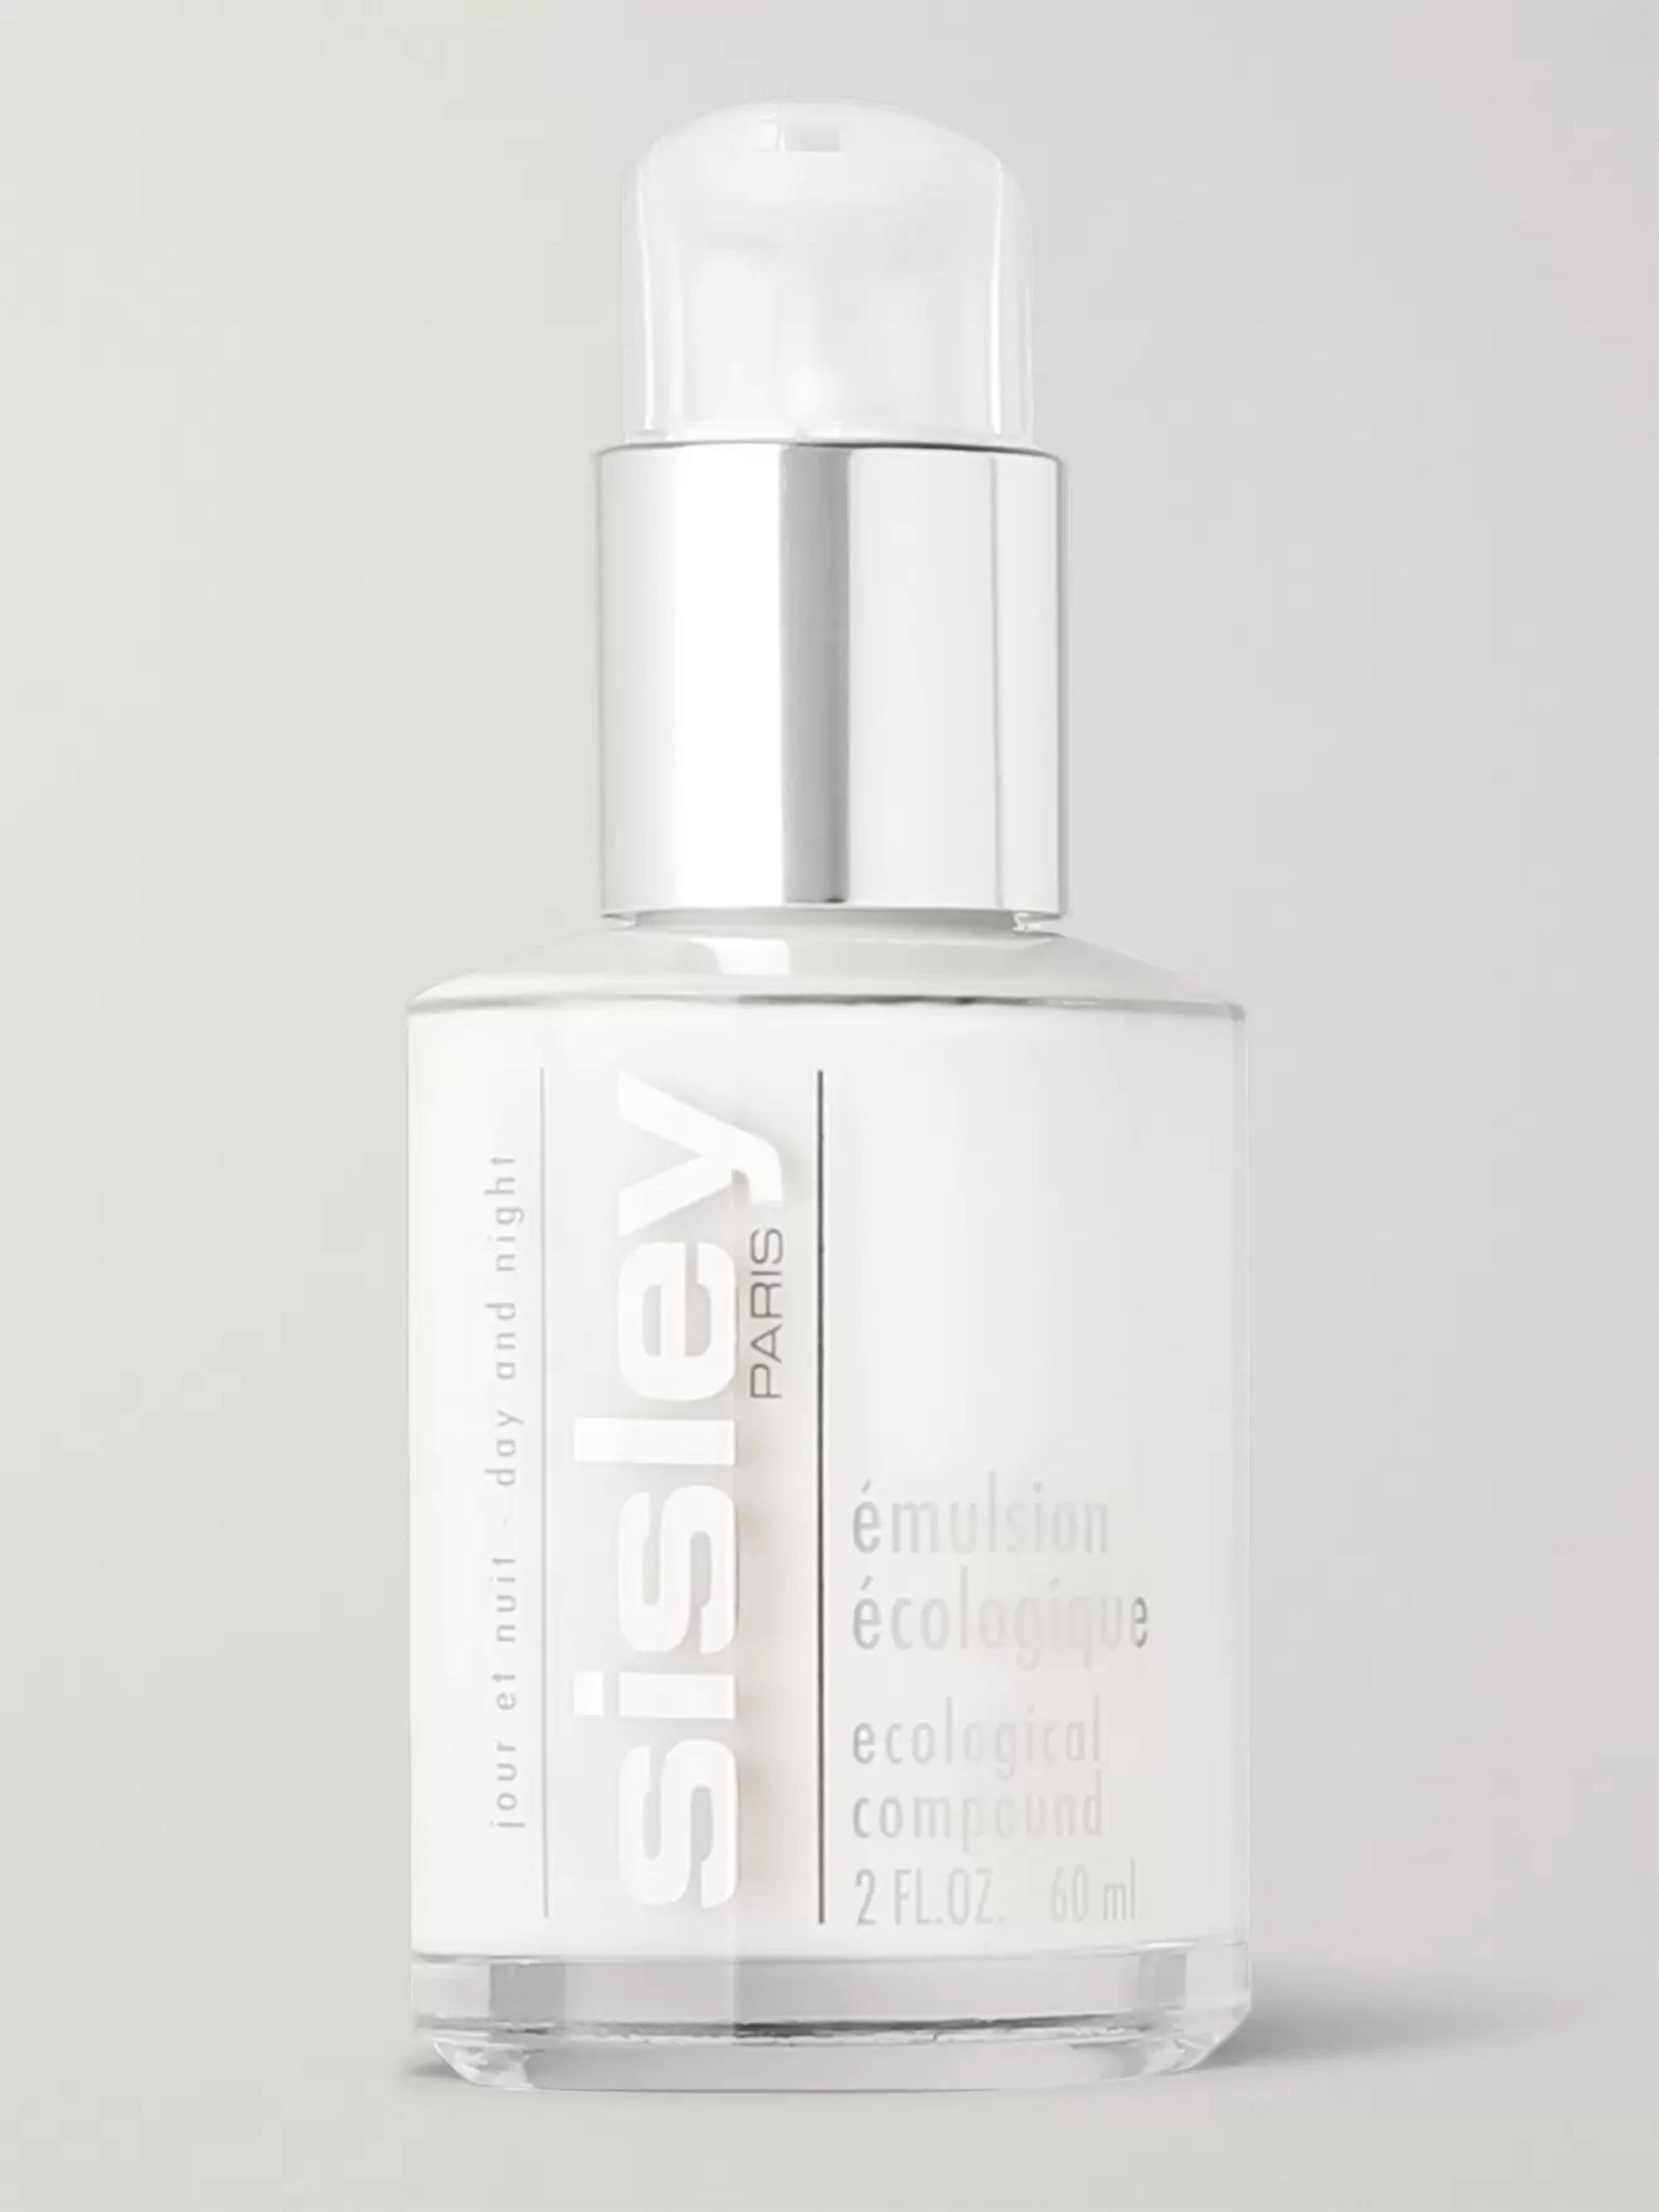 Sisley - Paris Ecological Compound, 60ml